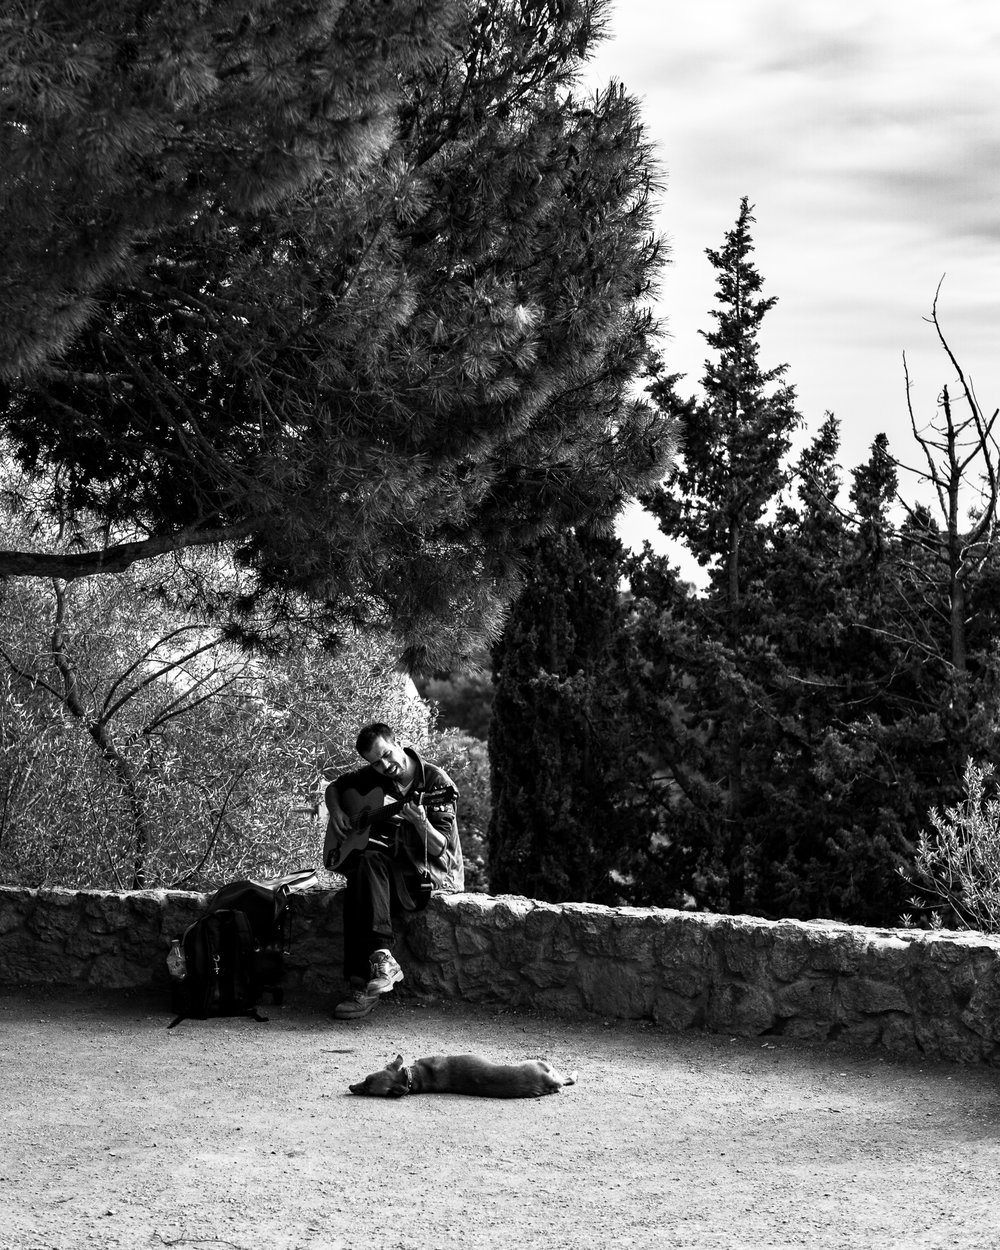 parc guell, barcelona, 2018